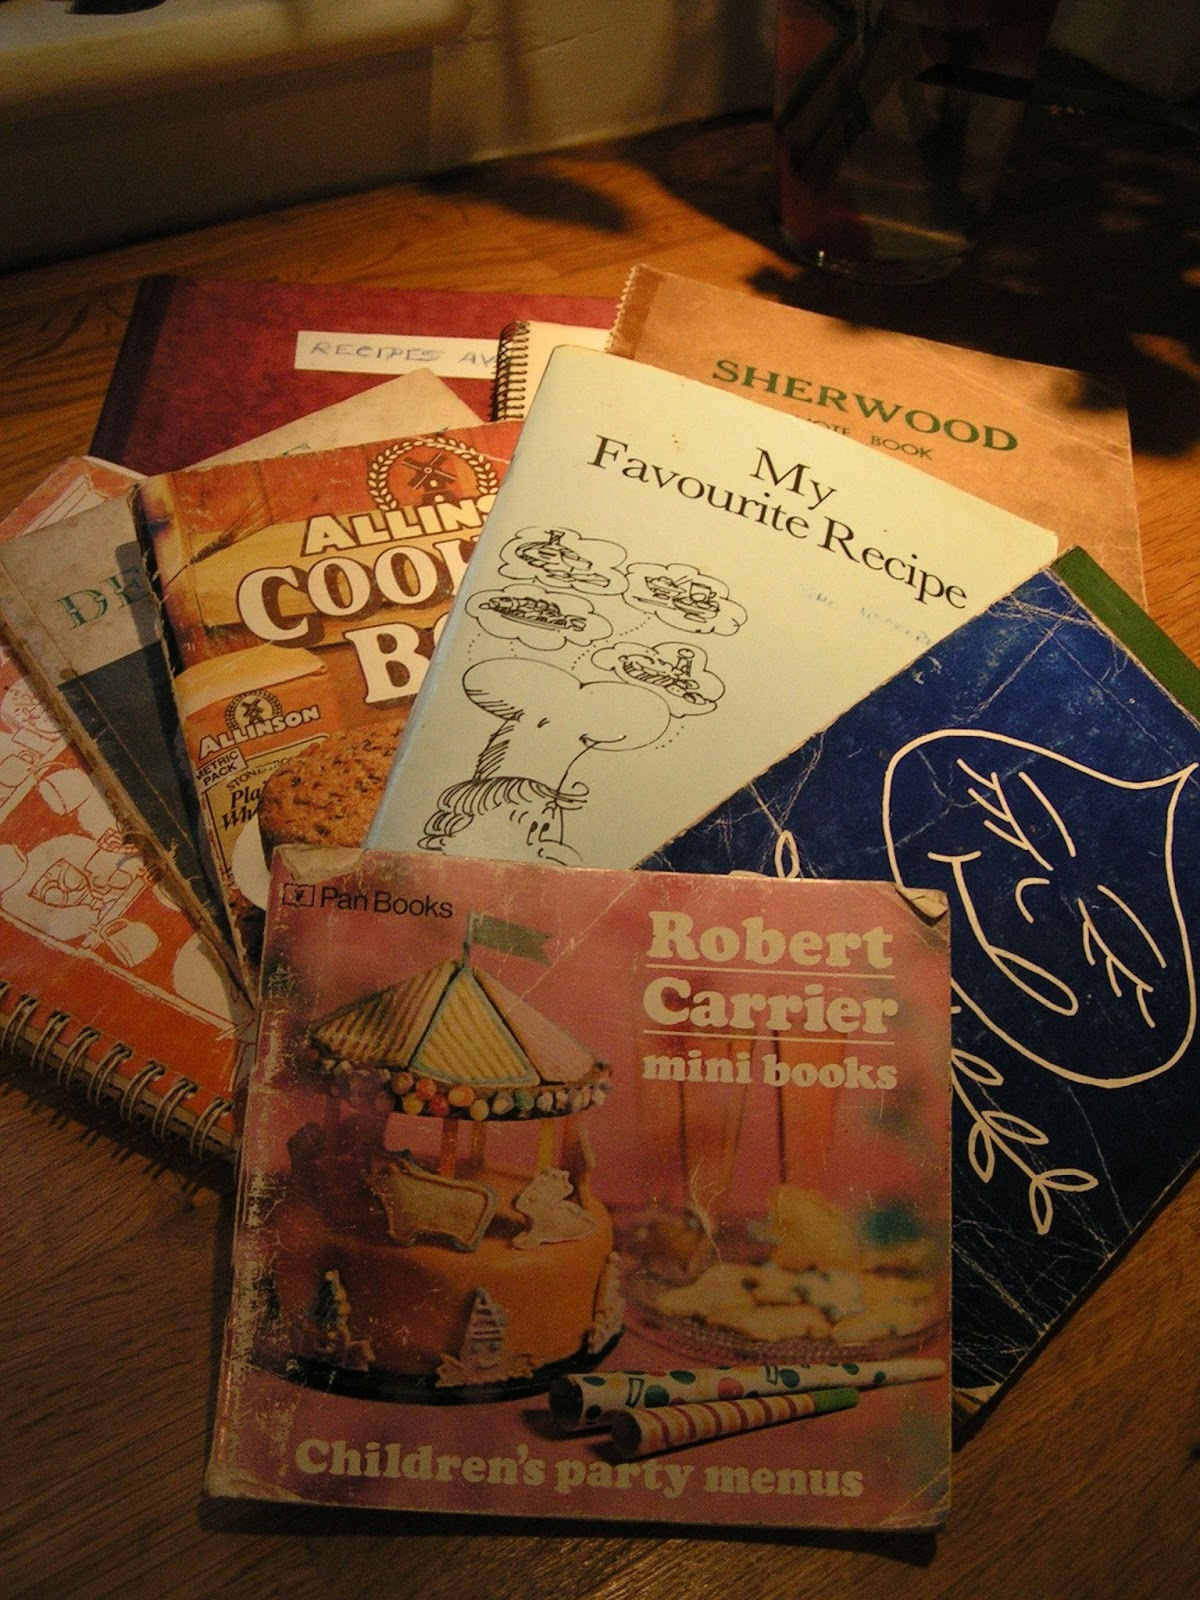 Old-fashioned cookbooks, bags of nostalgia and Boeuf a la movie - a random recipe